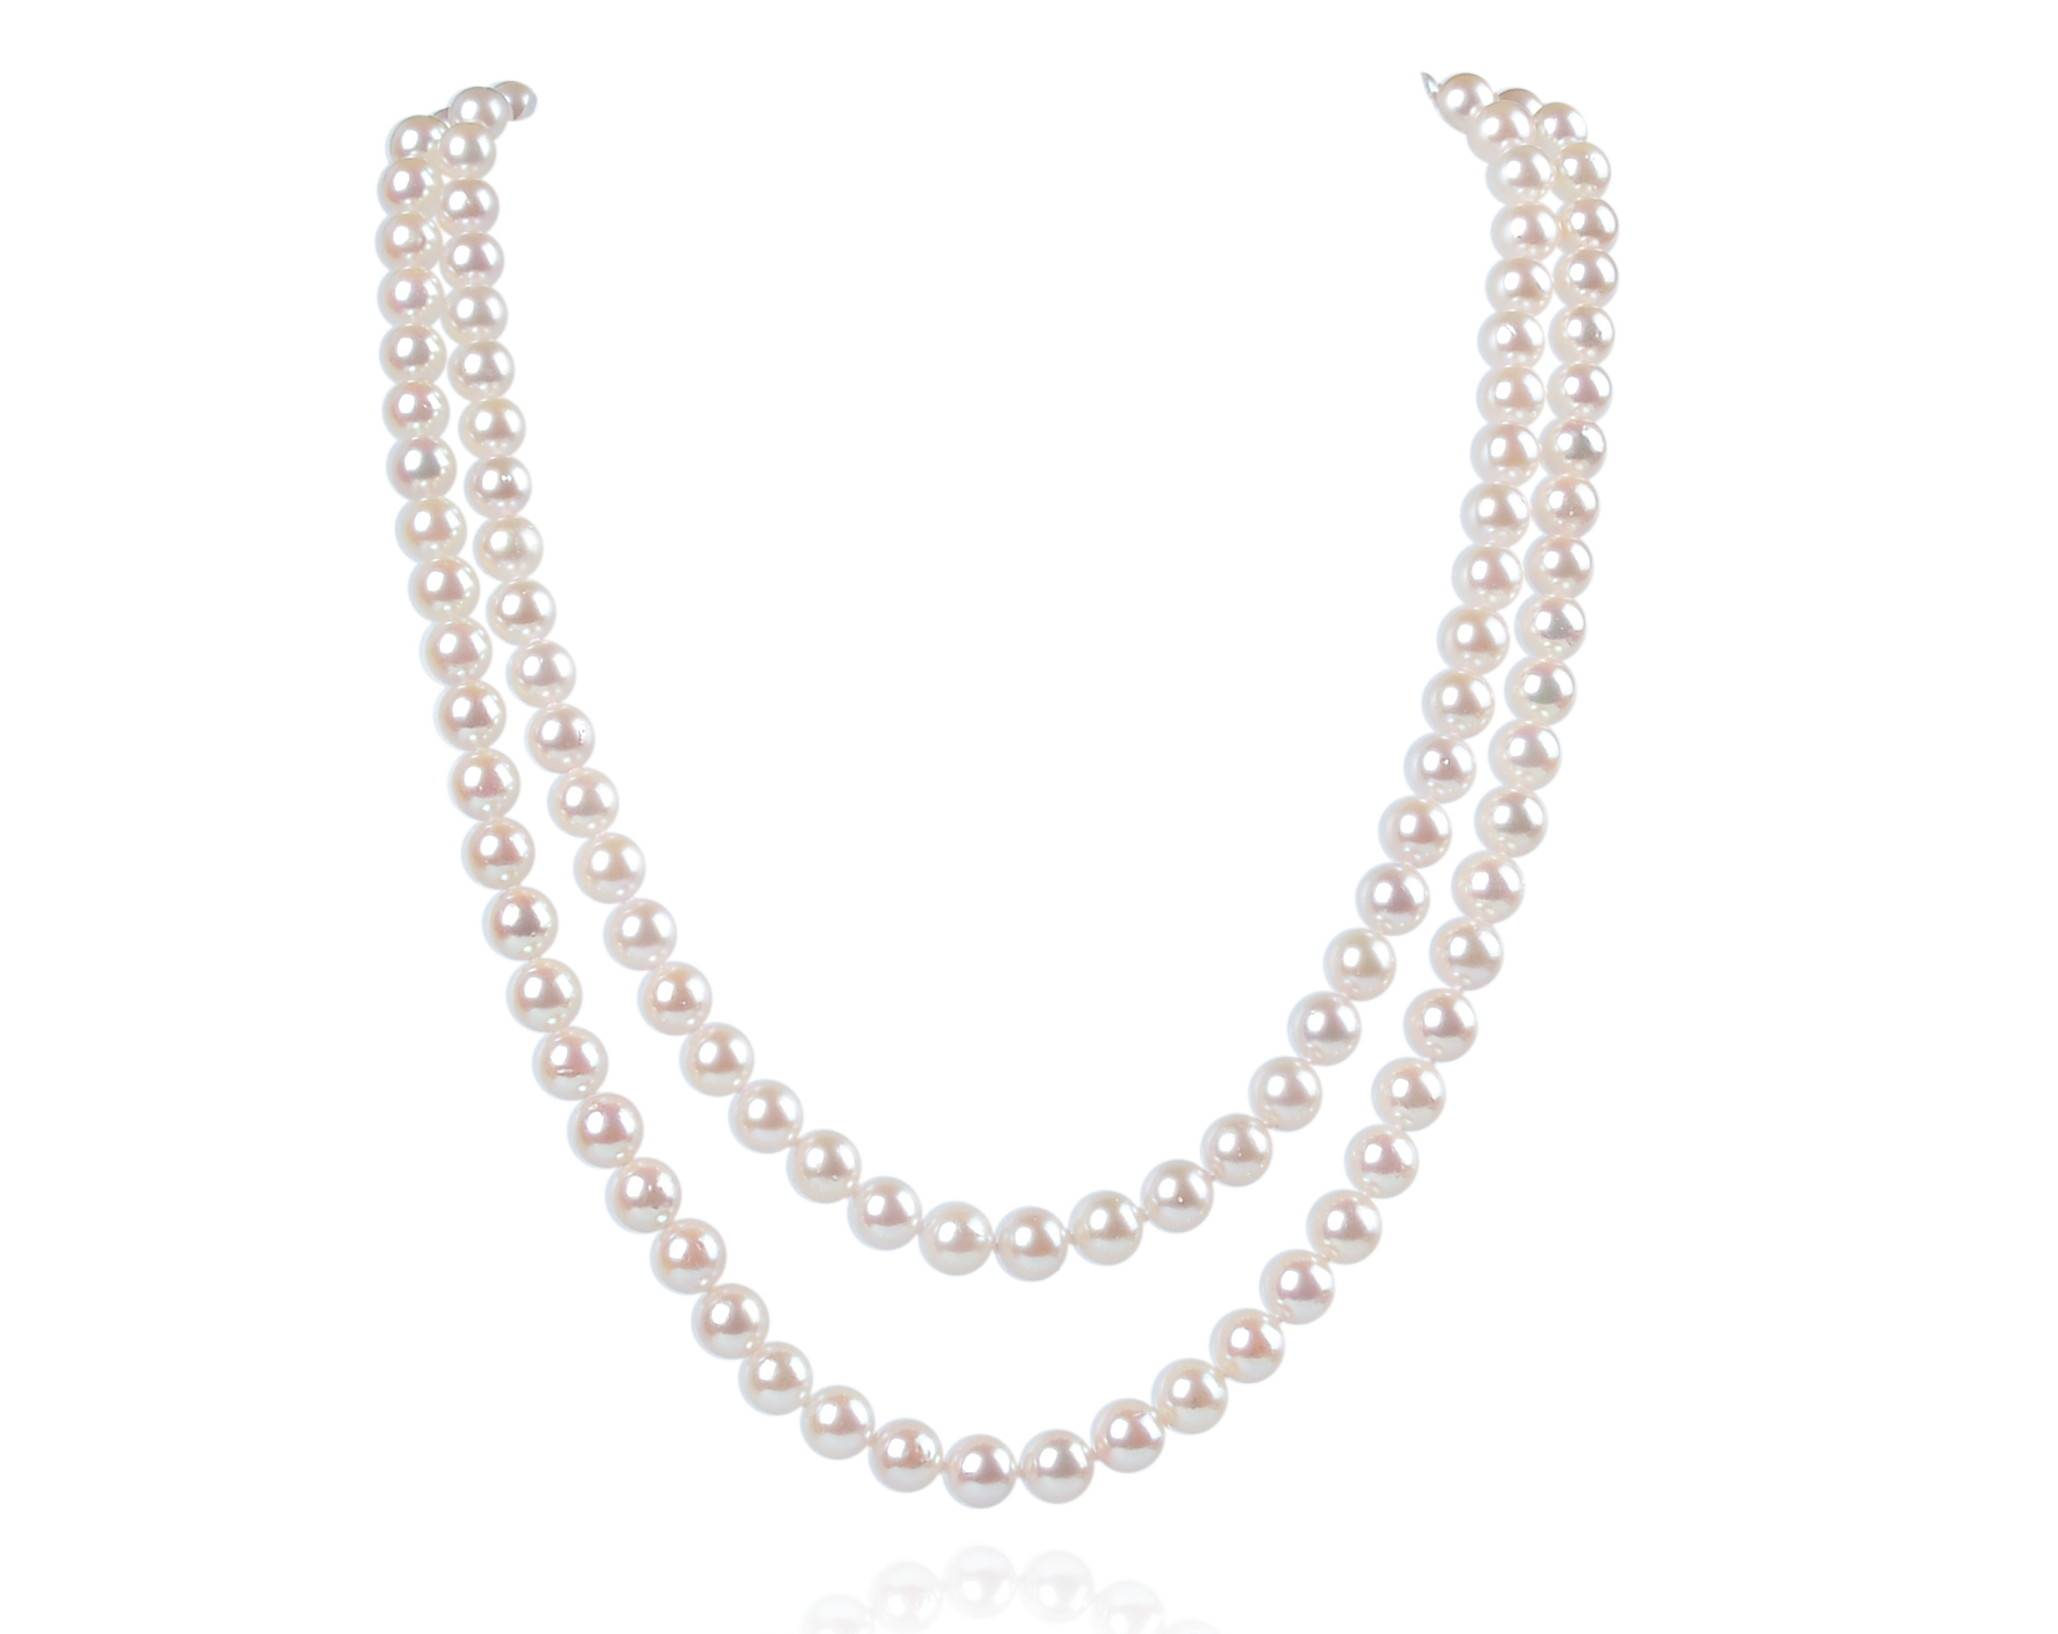 2 Strand AAA White Cultured Akoya Pearl Necklace -nk37